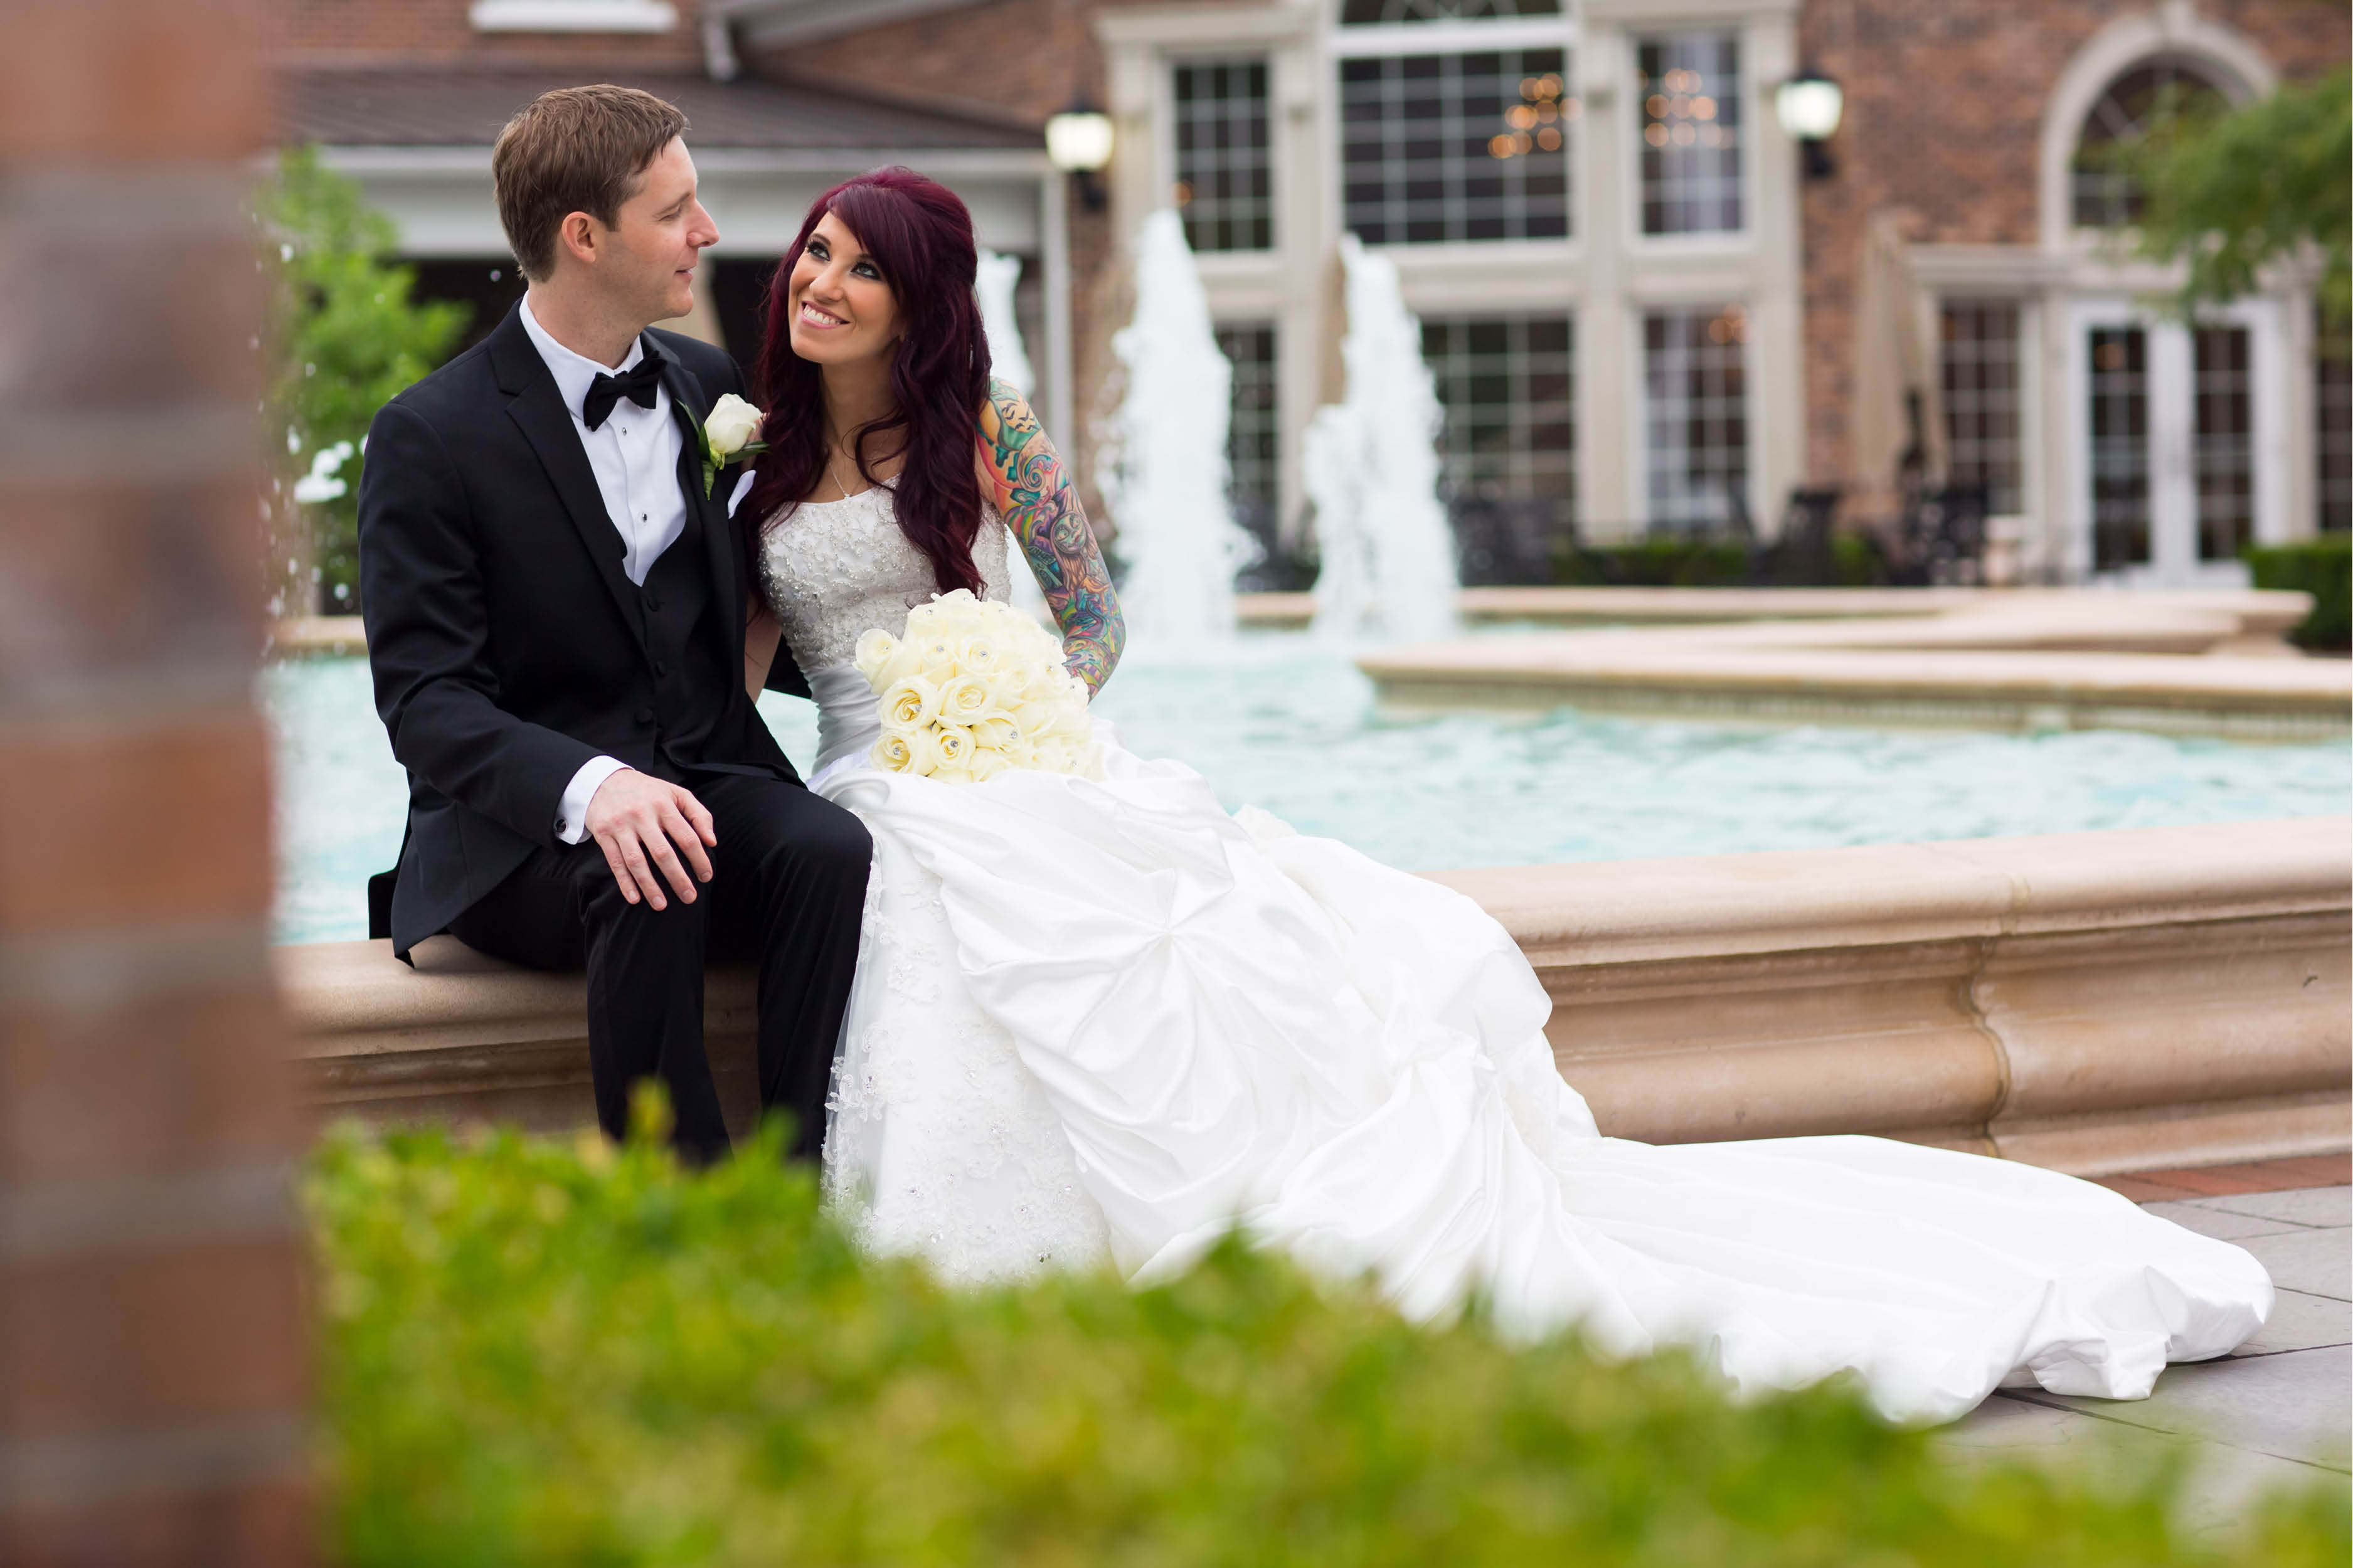 Emma_cleary_photography the Rockleigh NJ wedding9